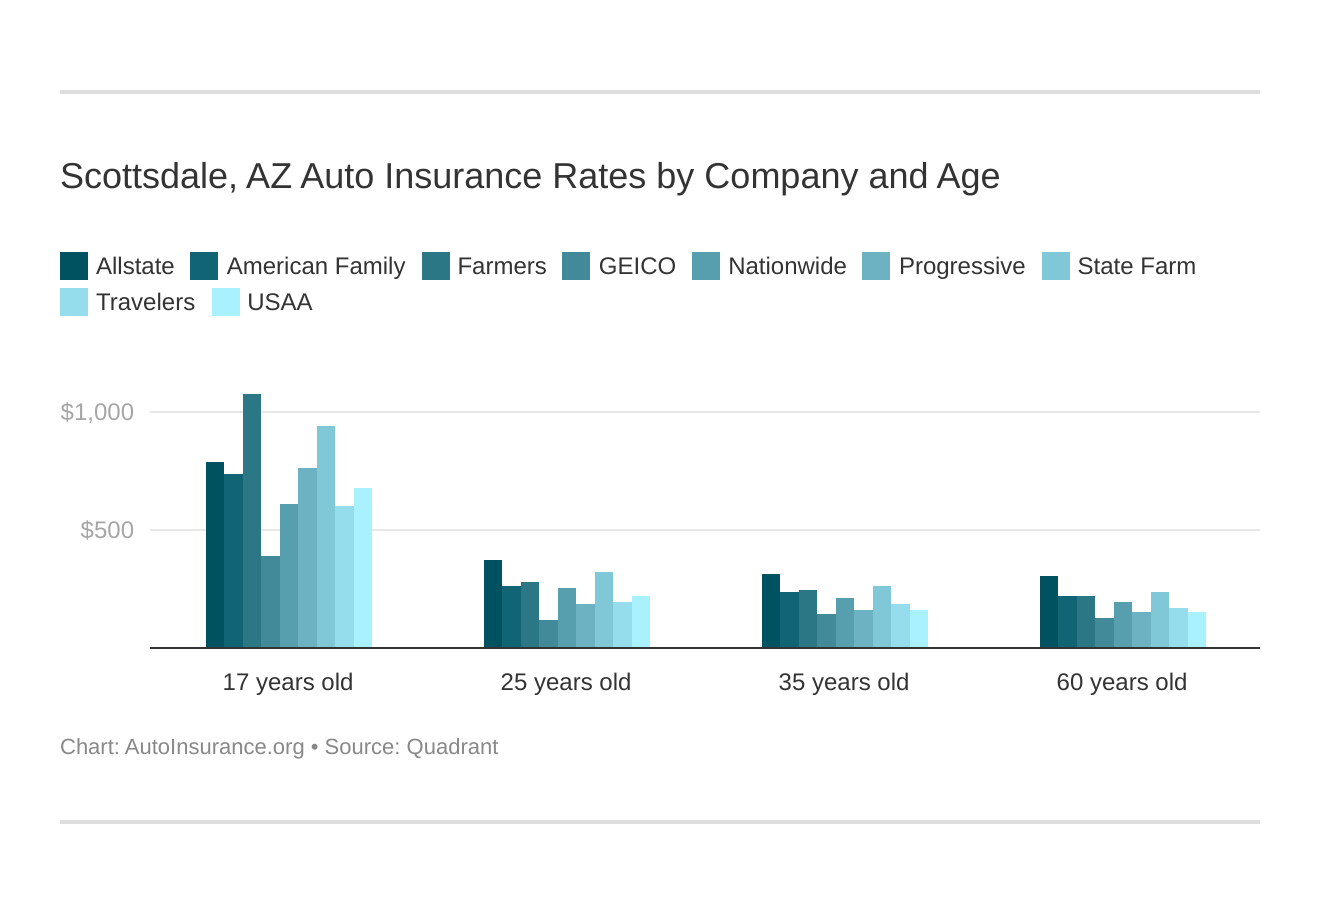 Scottsdale, AZ Auto Insurance Rates by Company and Age